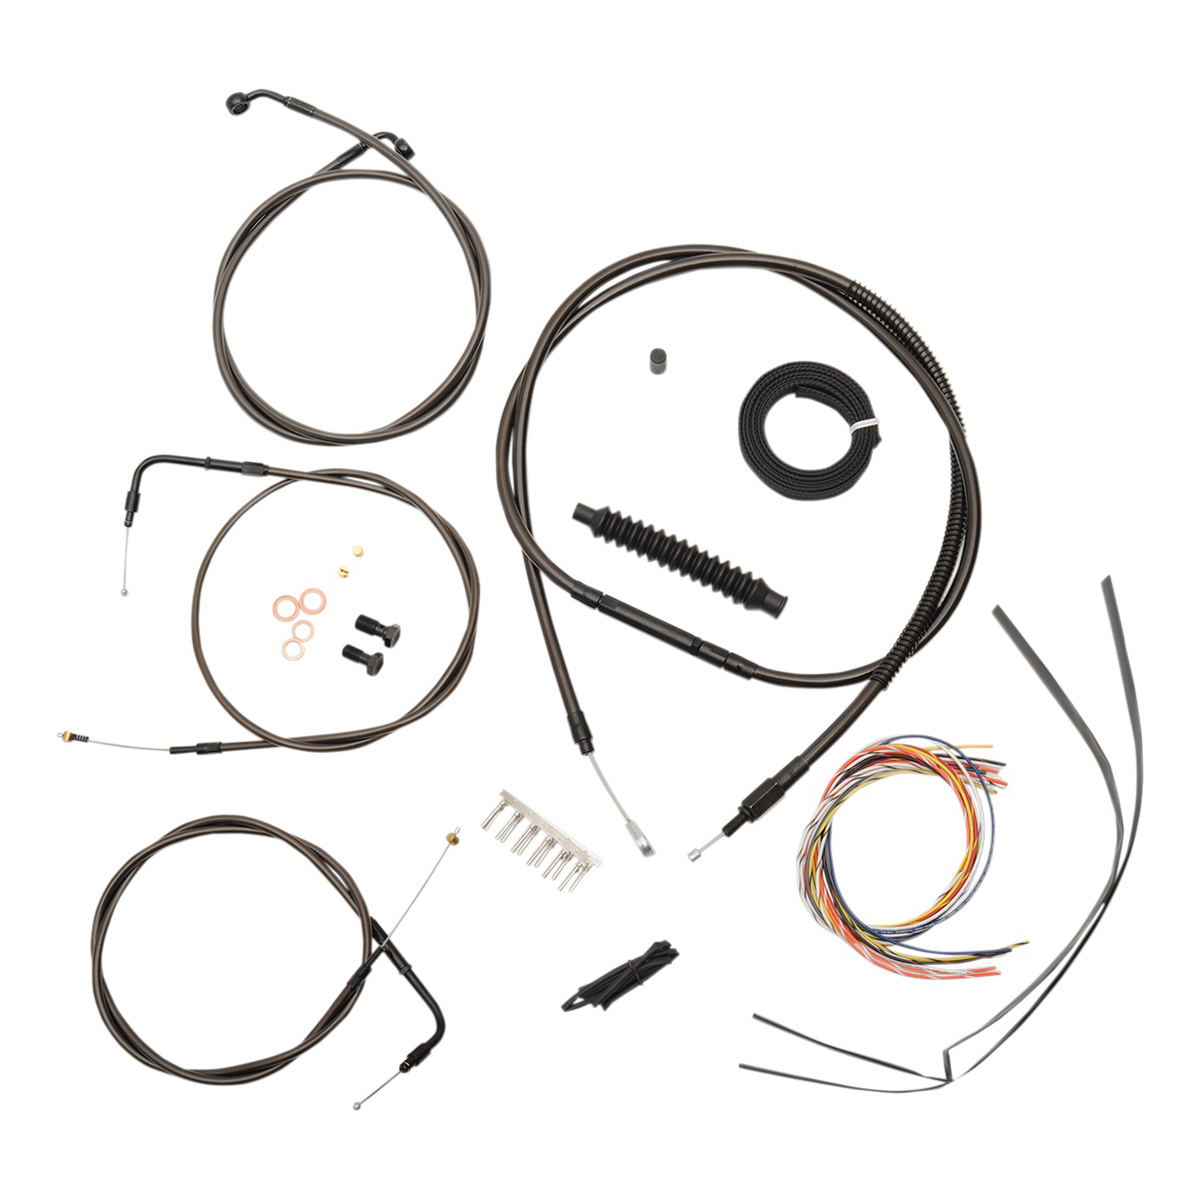 LA Choppers Midnight Complete Cable/Line/Wiring Handlebar Kit for 18″-20″ Bars on Models without ABS